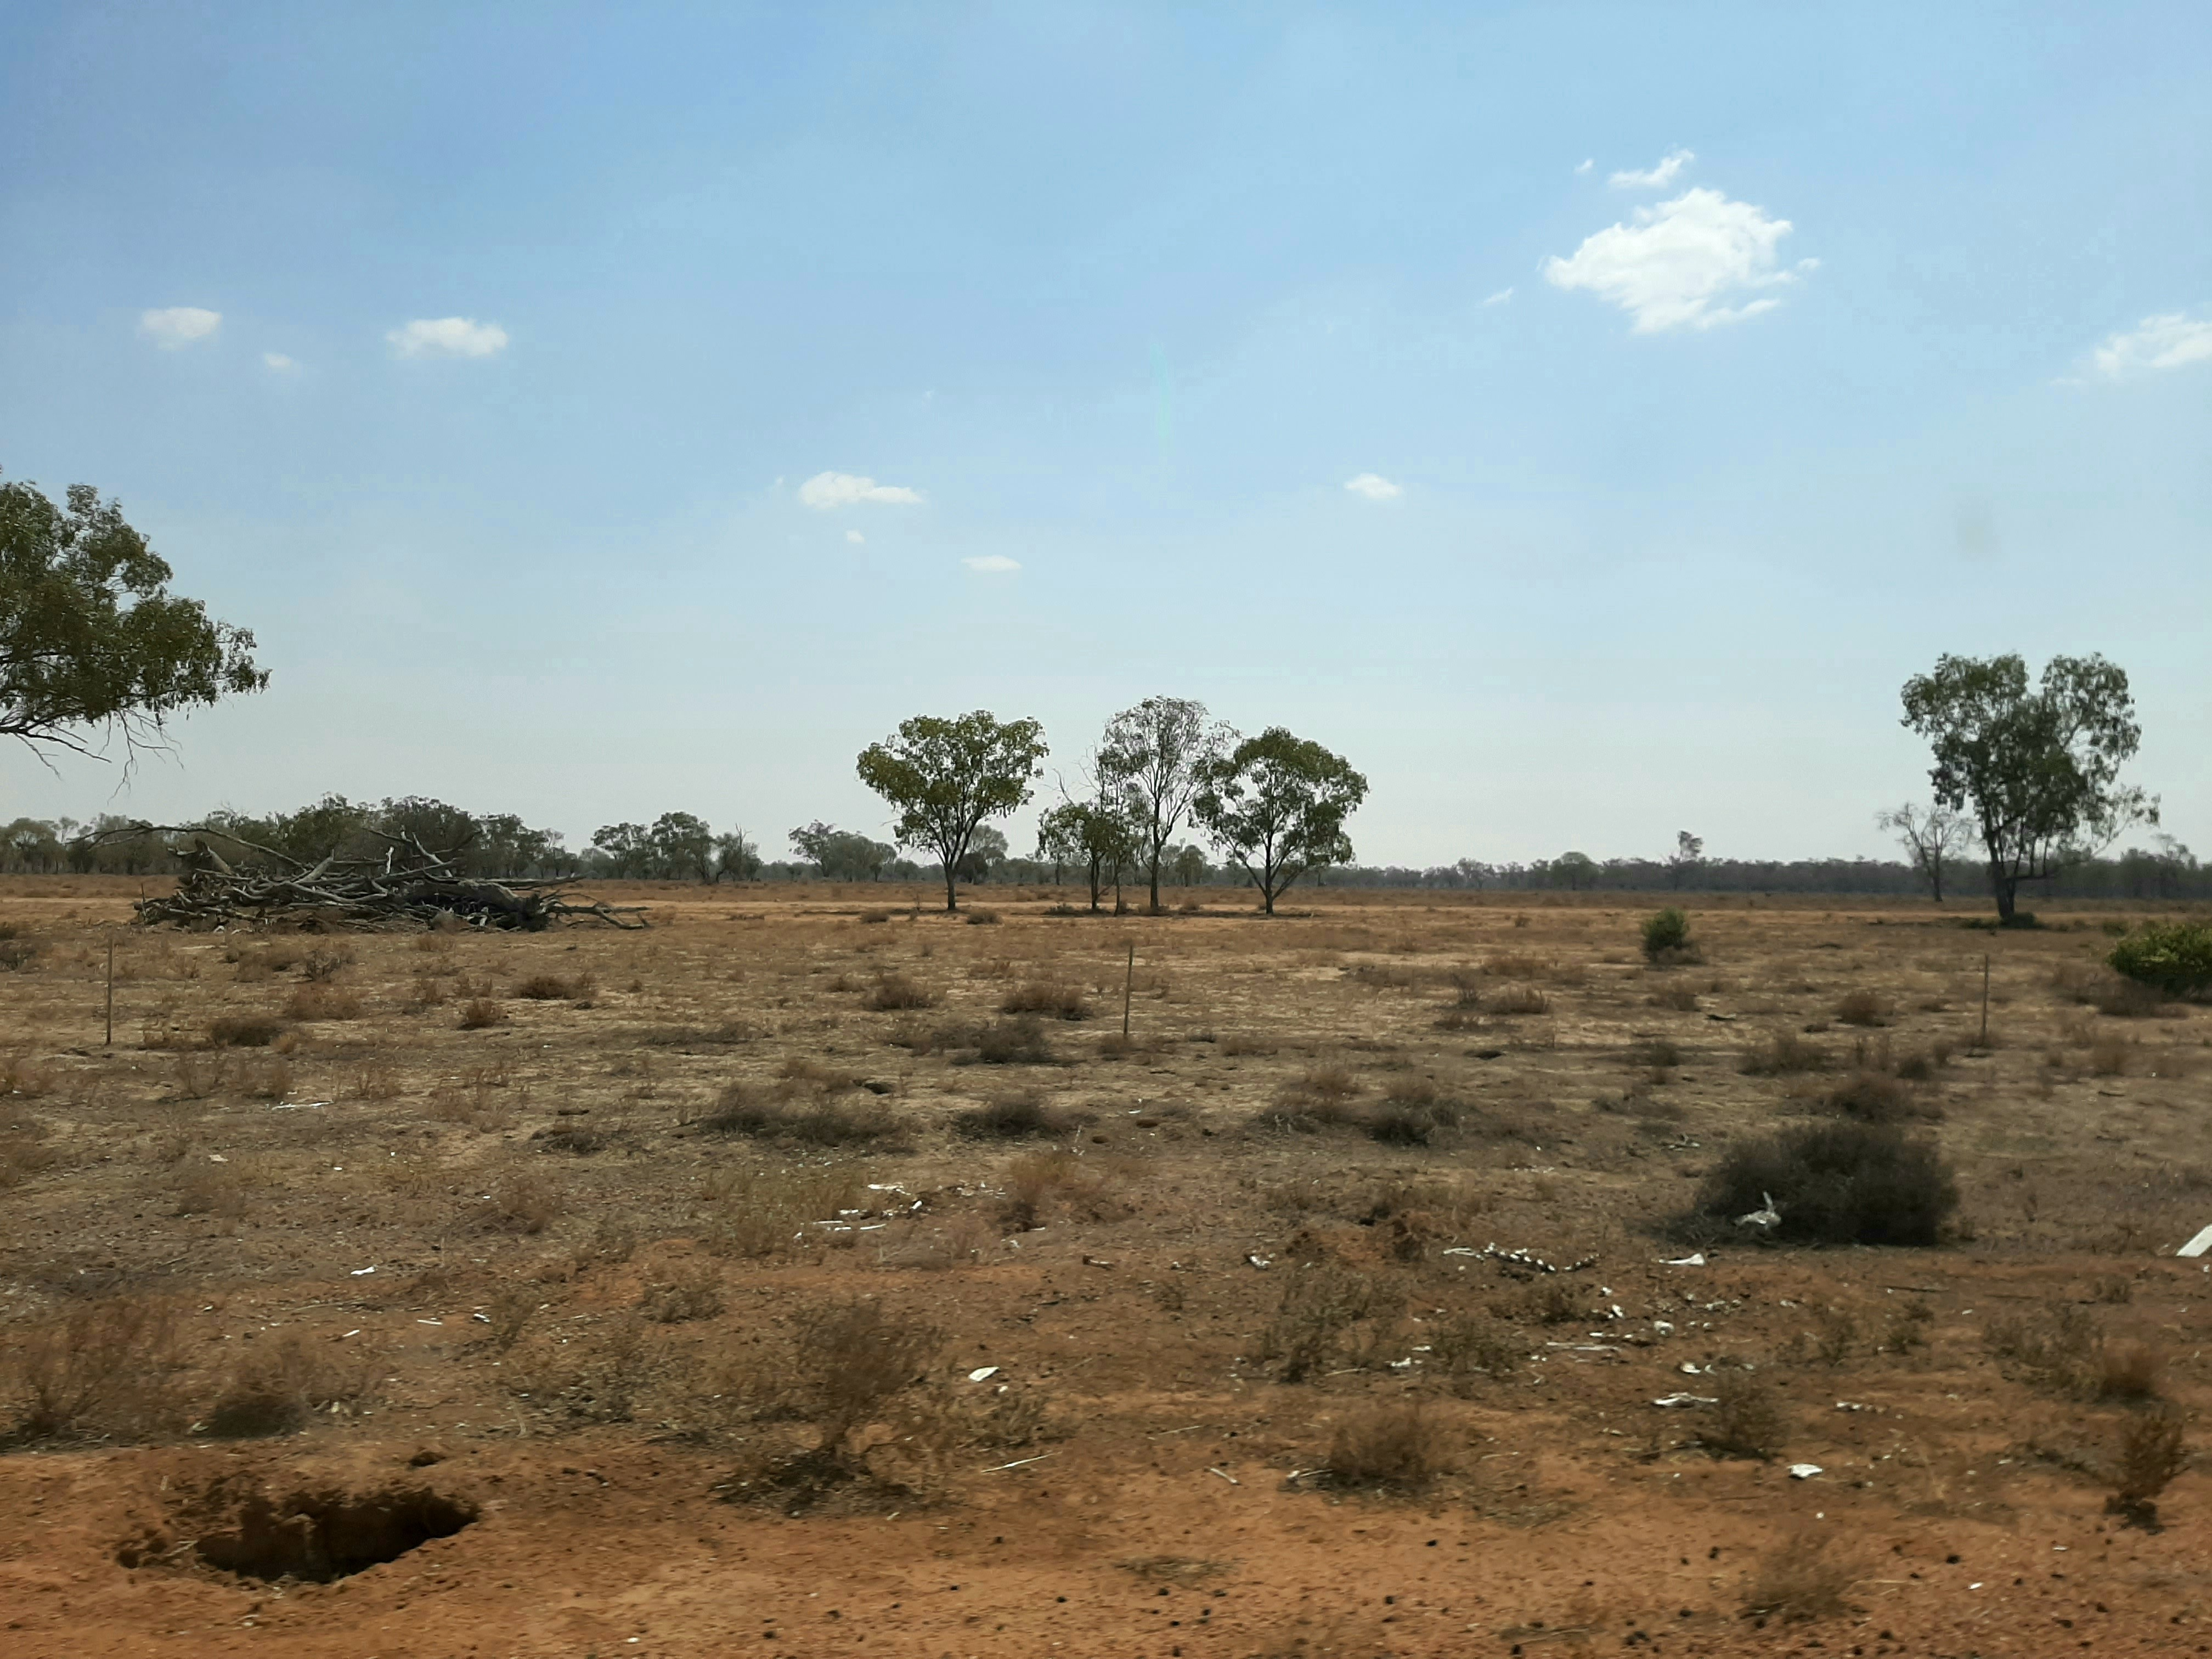 An image of an open plain with some small shrubs between mostly dirt. There are 5 trees in the distance - 3 of these are together in the centre and there are 1 on each side at the edge of the picture.